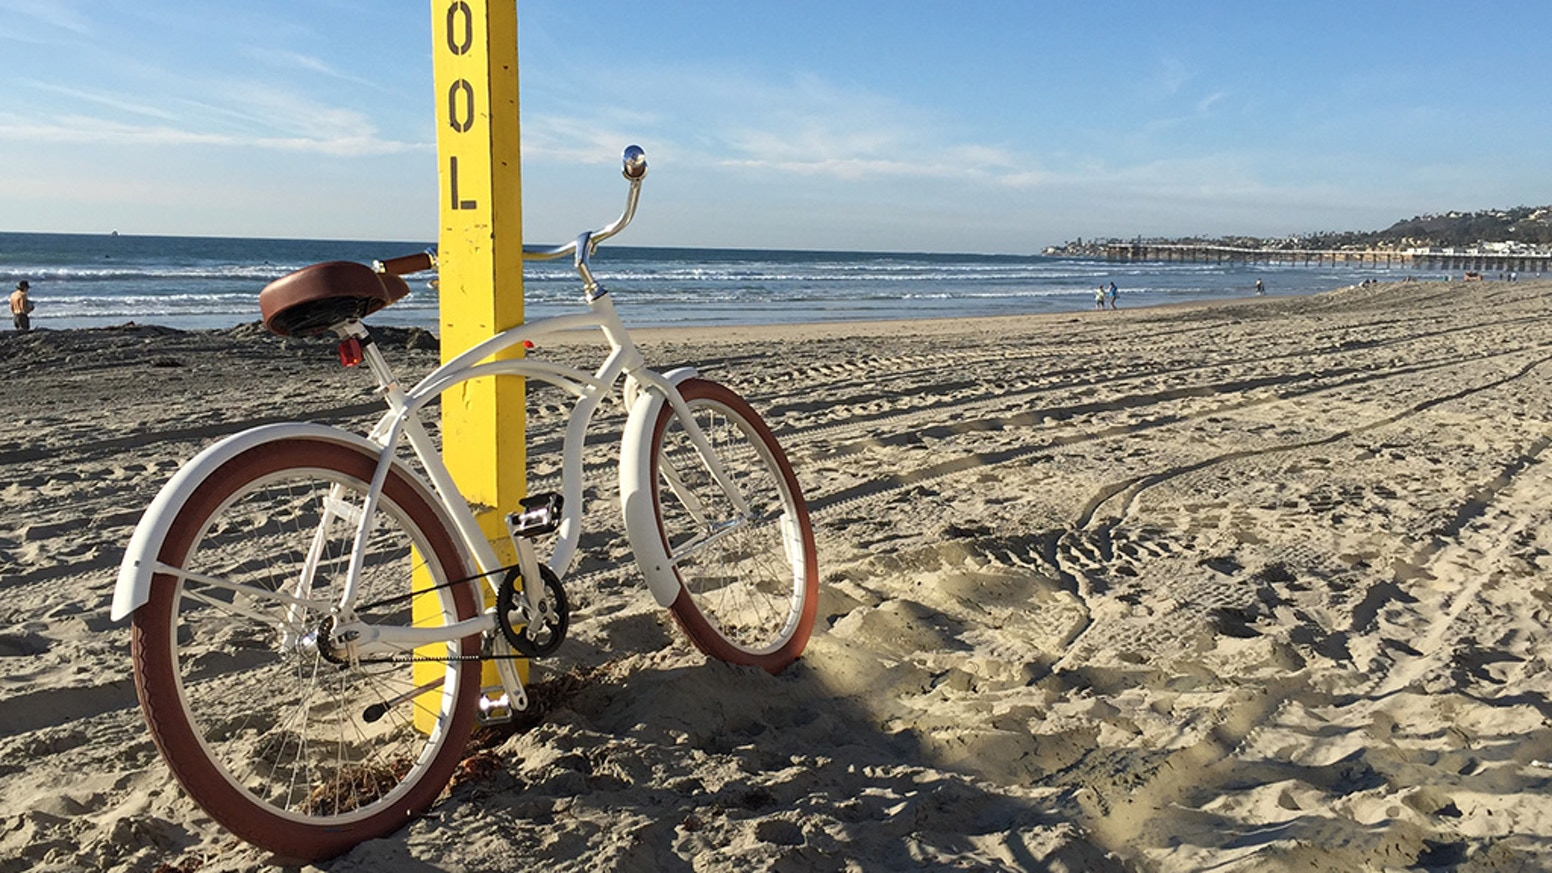 Introducing the Priority Coast: The first weatherproof, rustproof, grease-free, belt driven, smooth-riding beach bicycle.